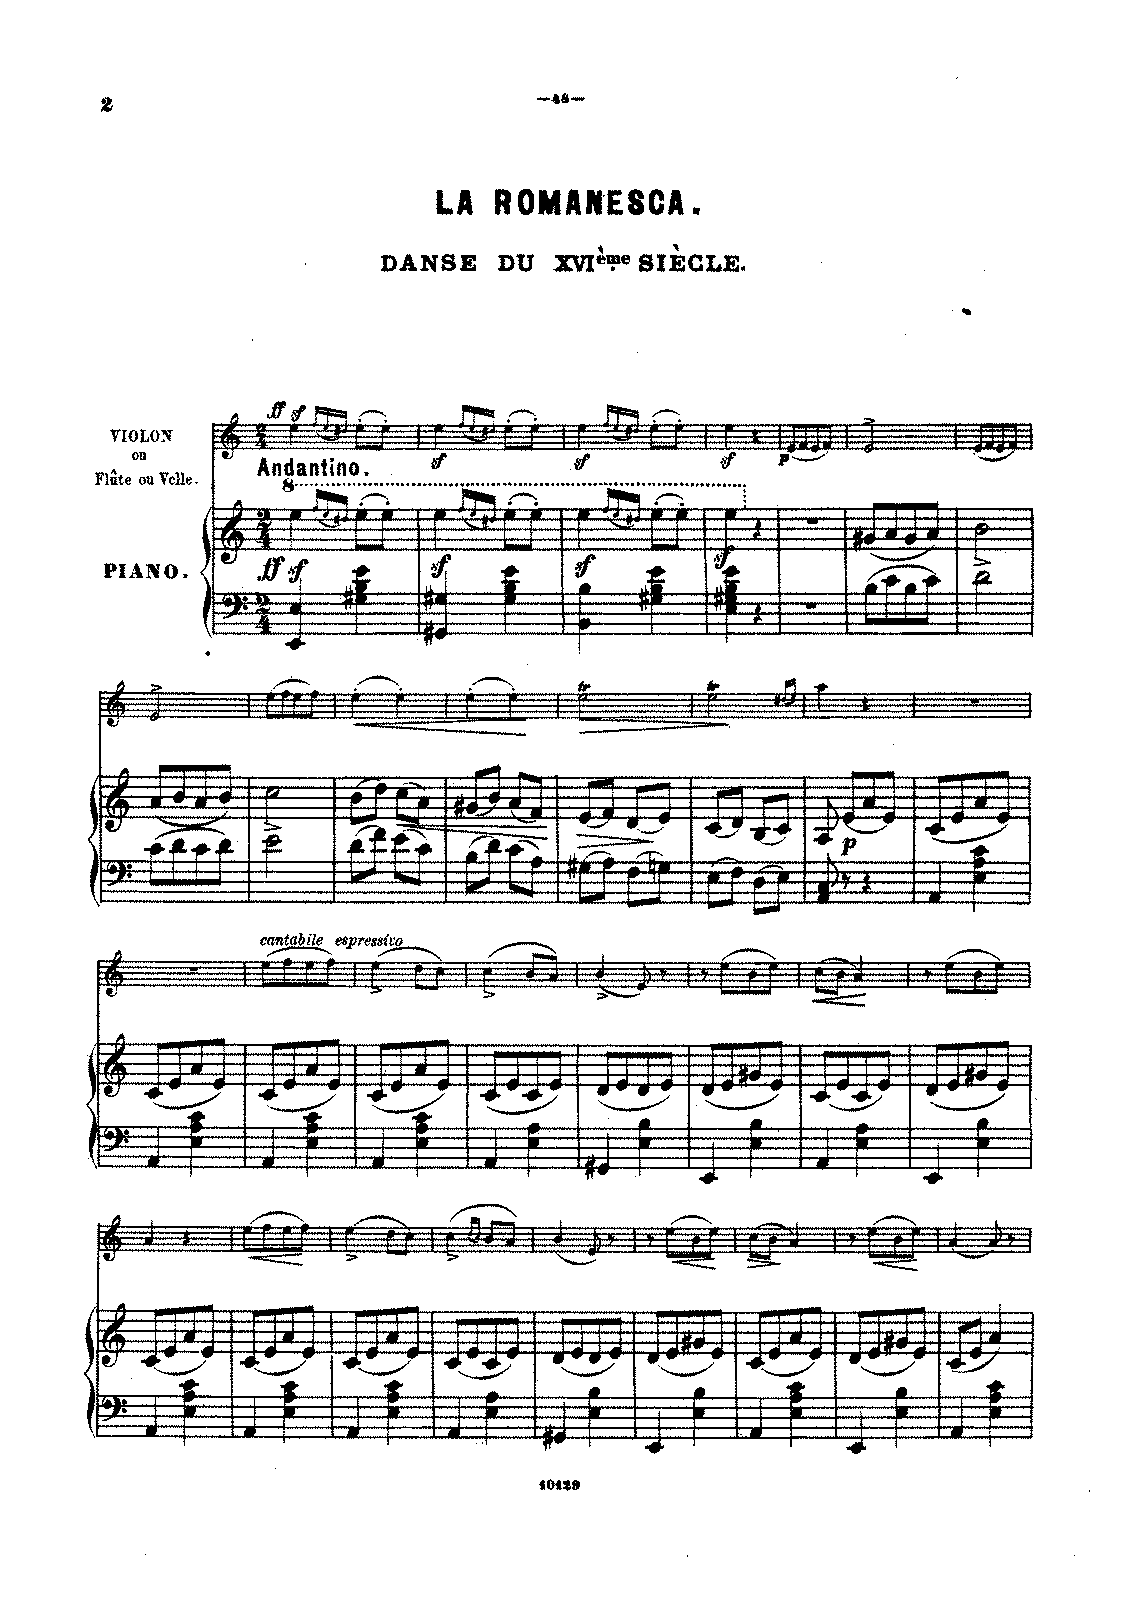 PMLP133172-La Romanesca for Cello and Piano score.pdf